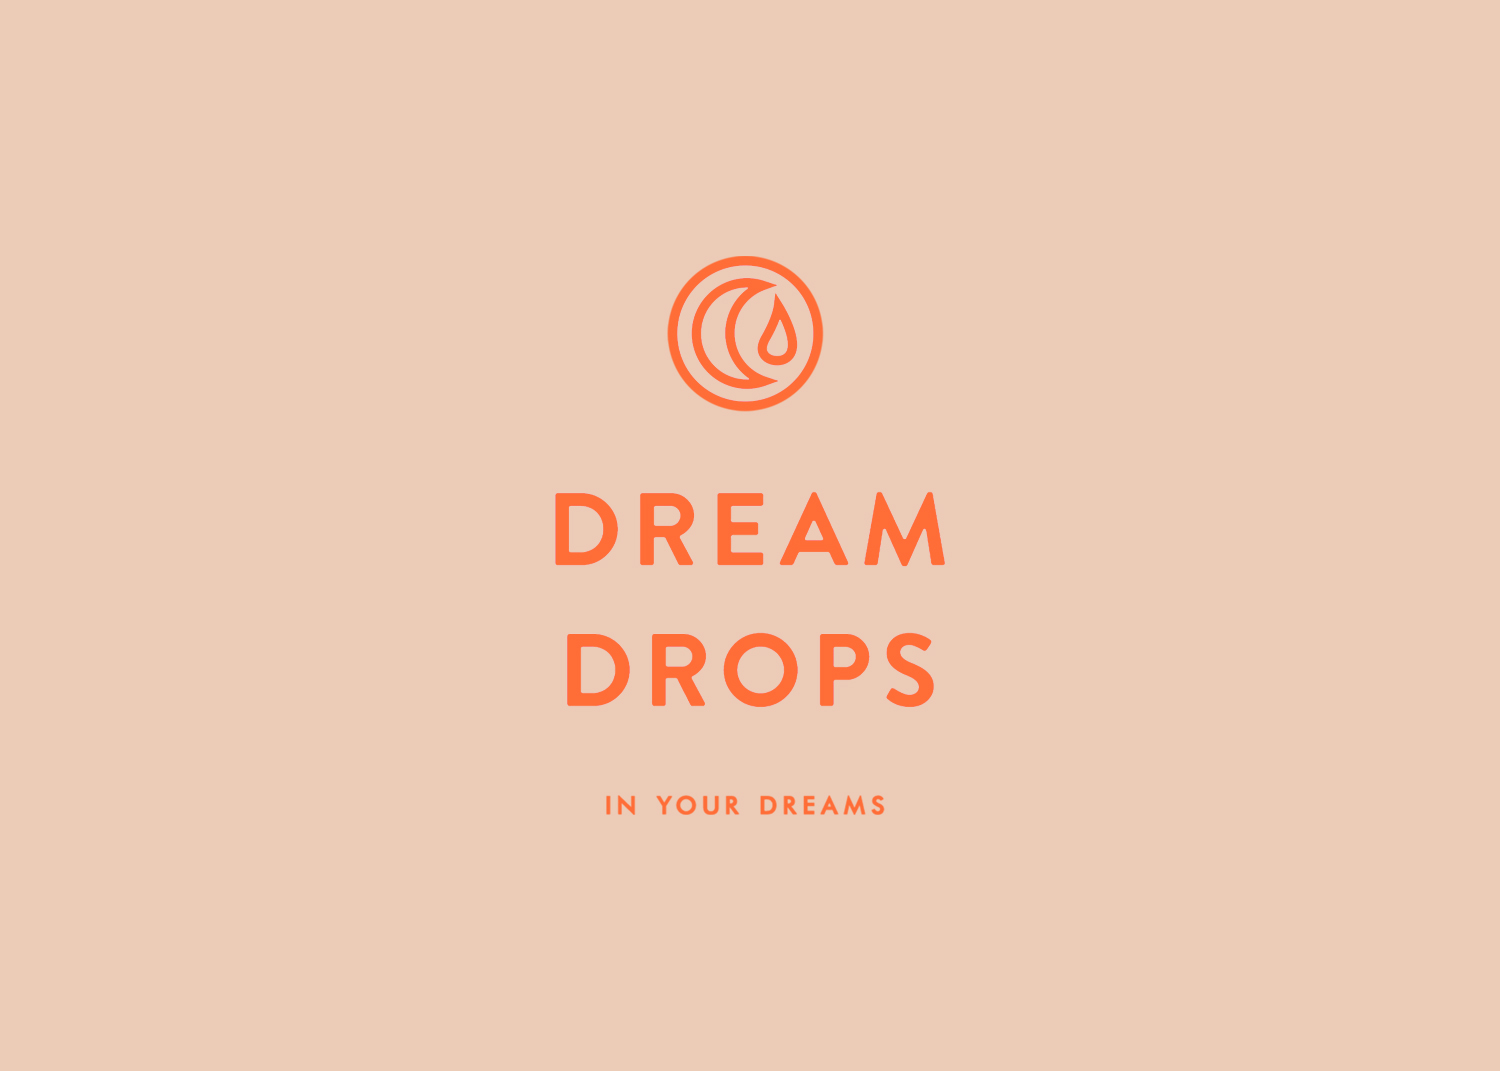 dream drops logo lydia ekeroth.jpg